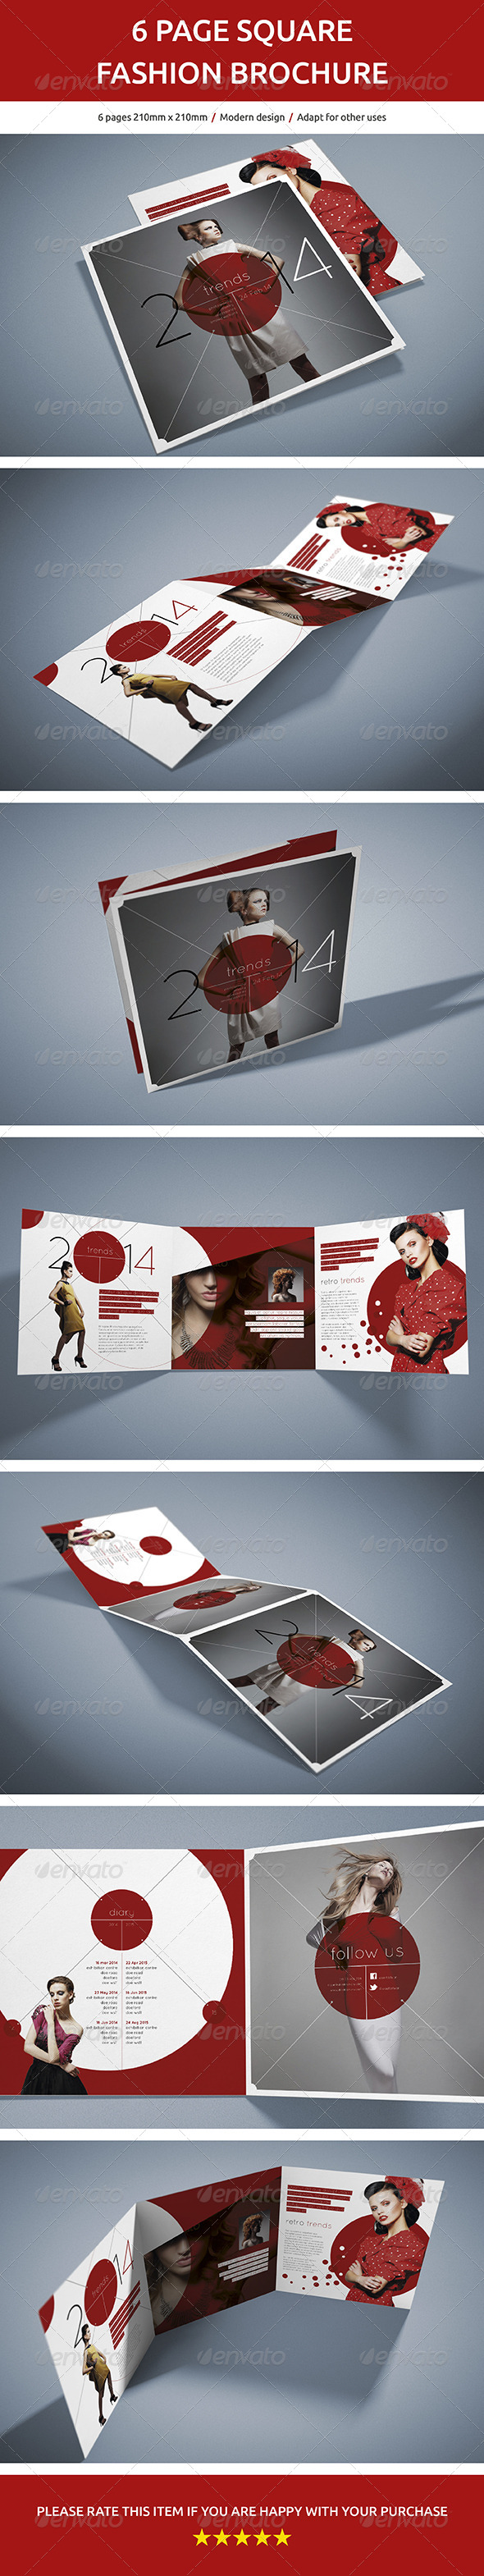 6 Page Square Fashion Brochure - Brochures Print Templates